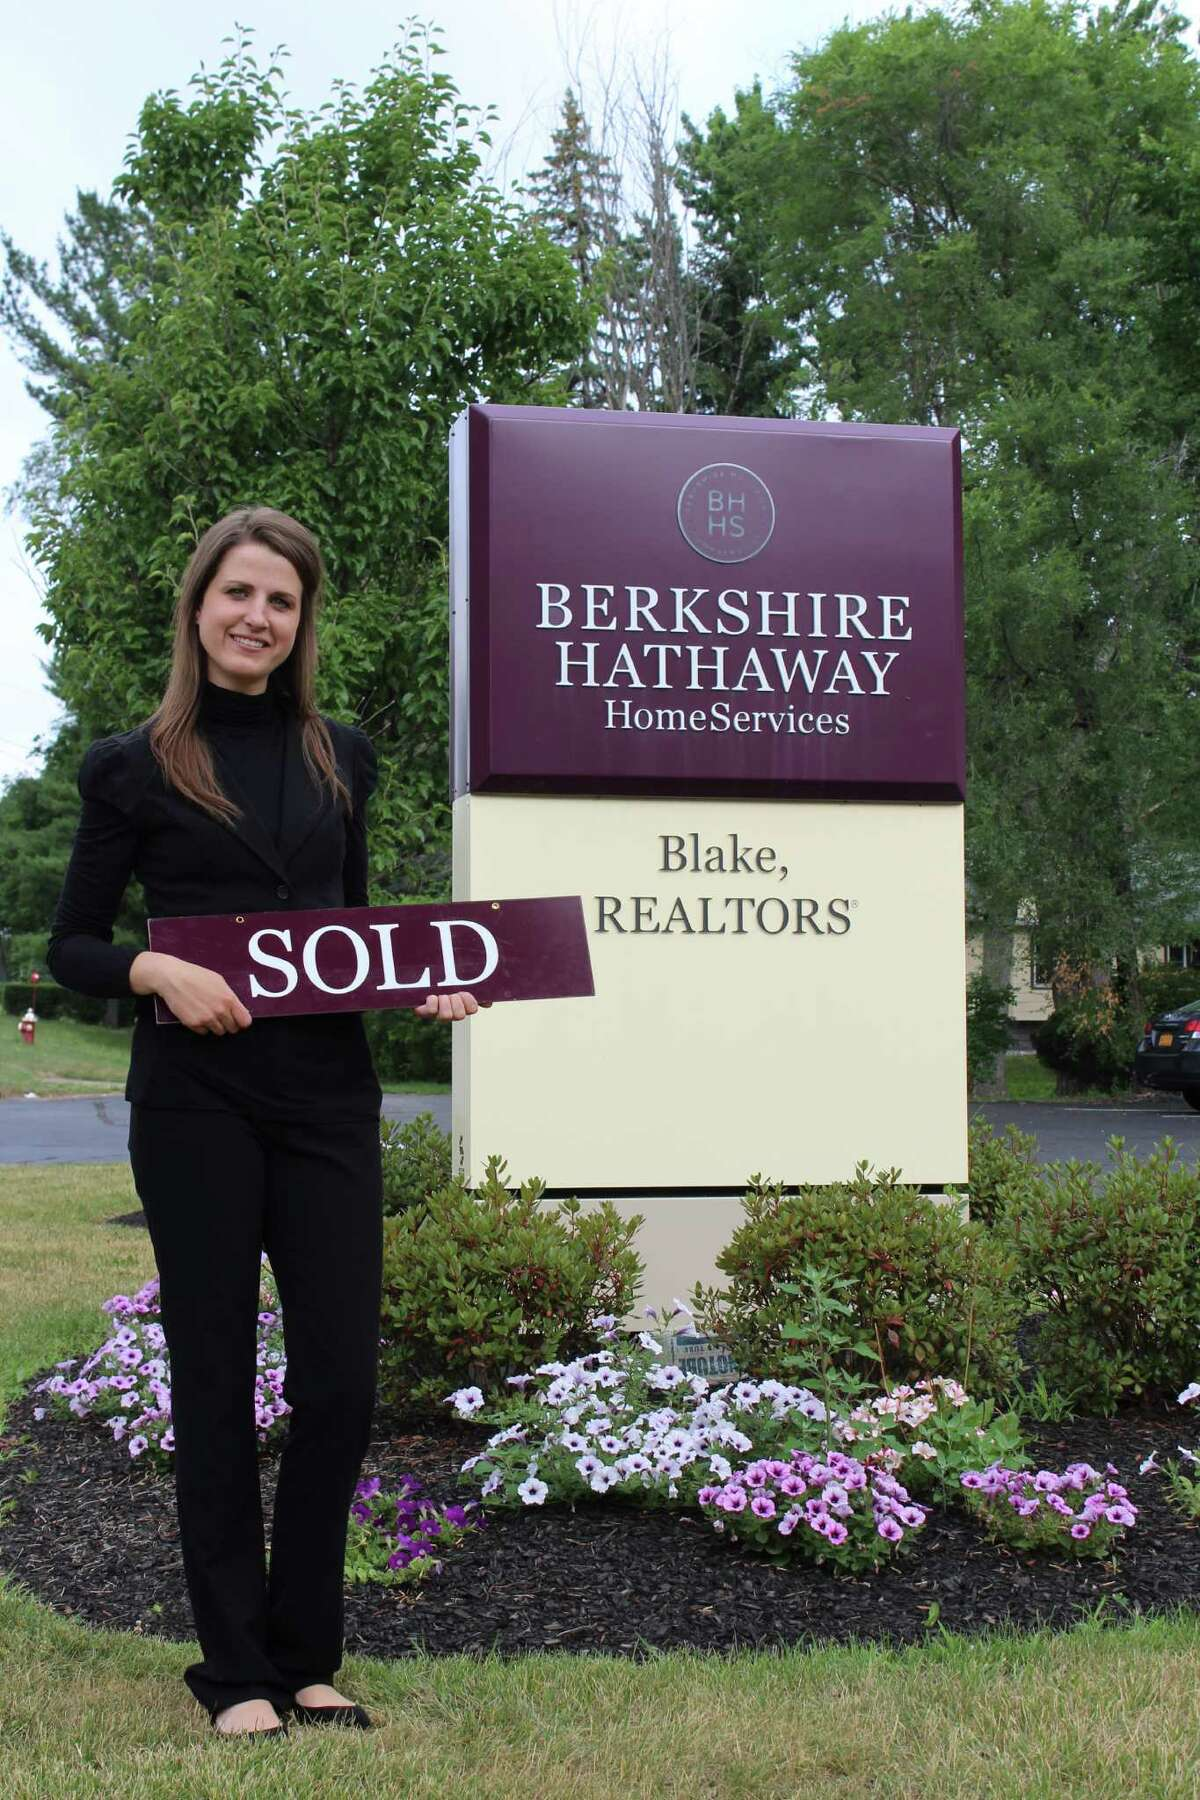 Lisa Roth, a real estate agent with Berkshire Hathaway